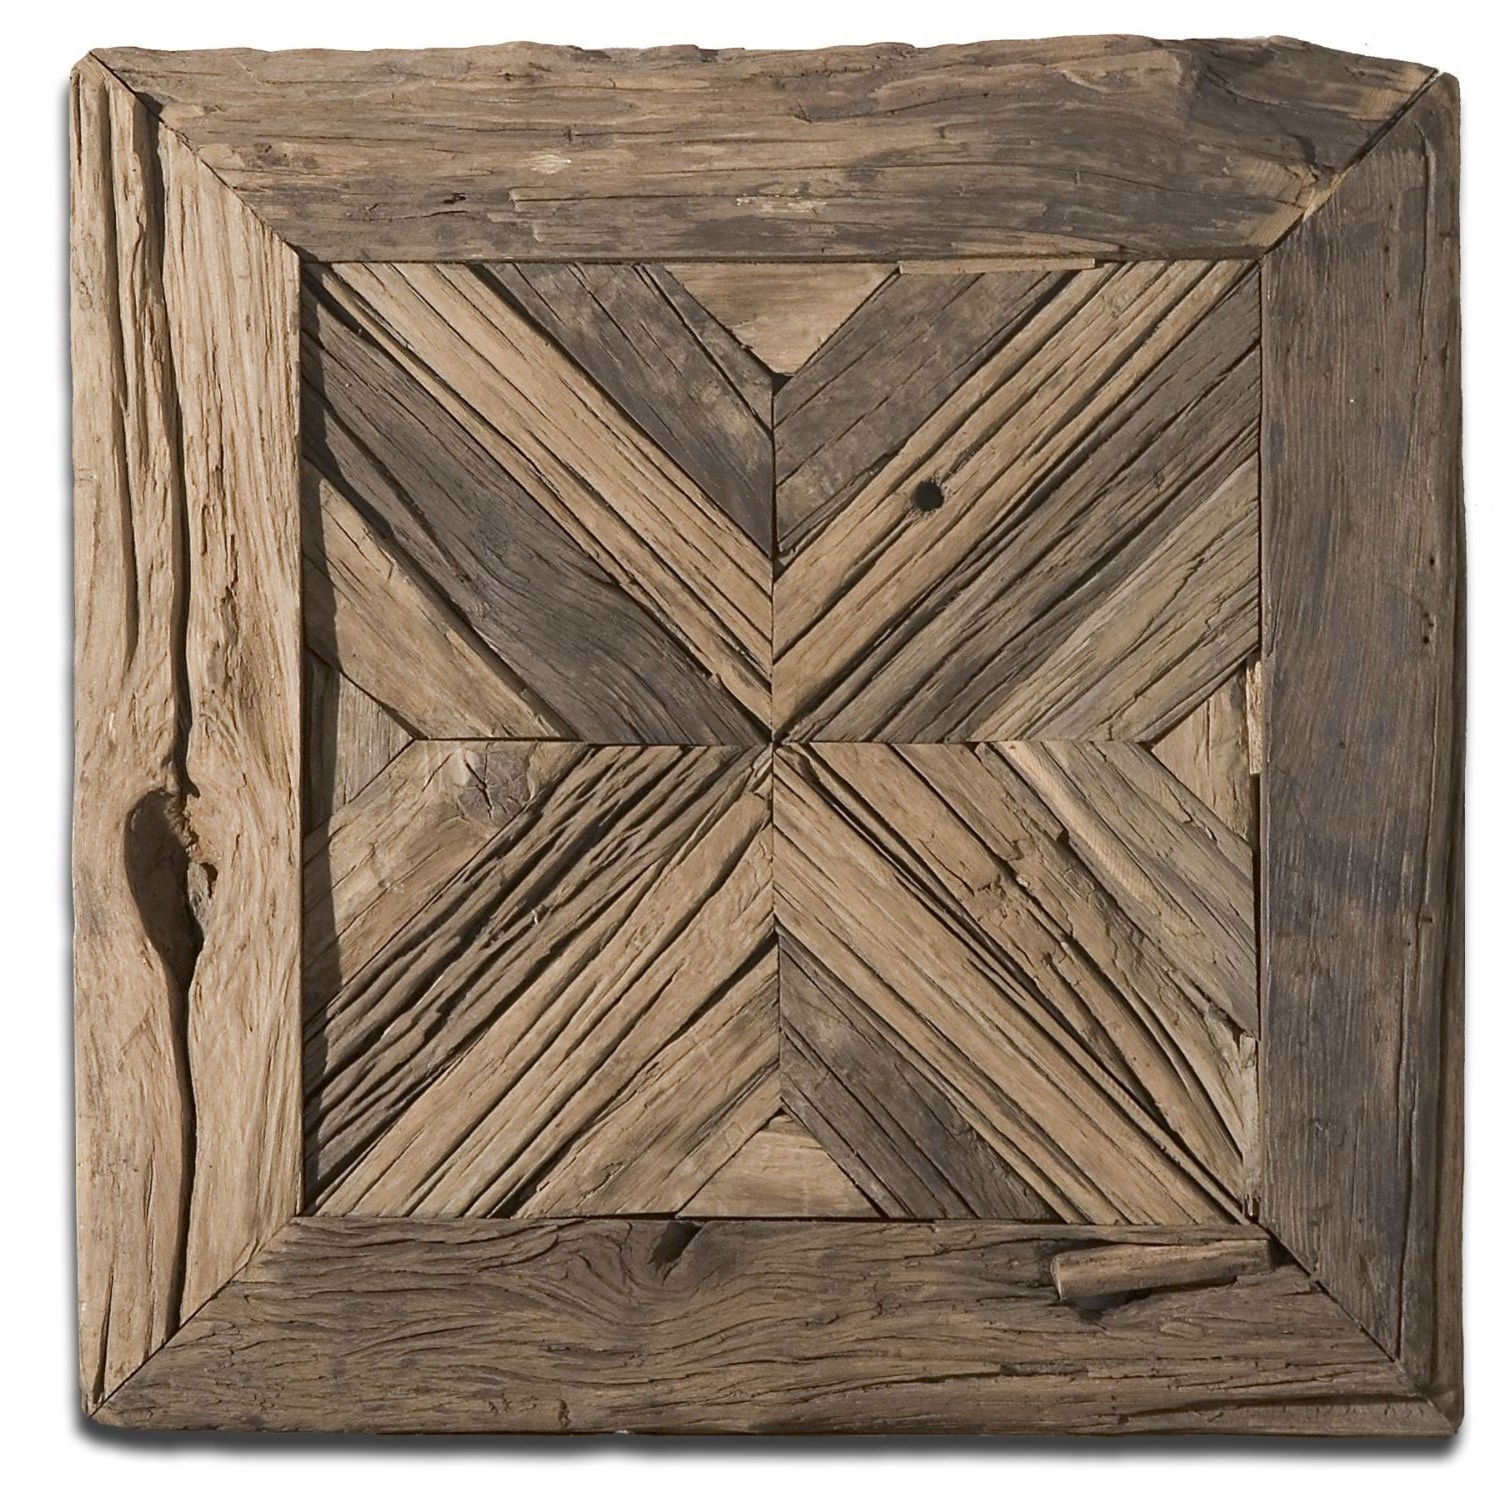 Uttermost Rennick Rustic Wood Wall Art 04014 (Gallery 10 of 20)